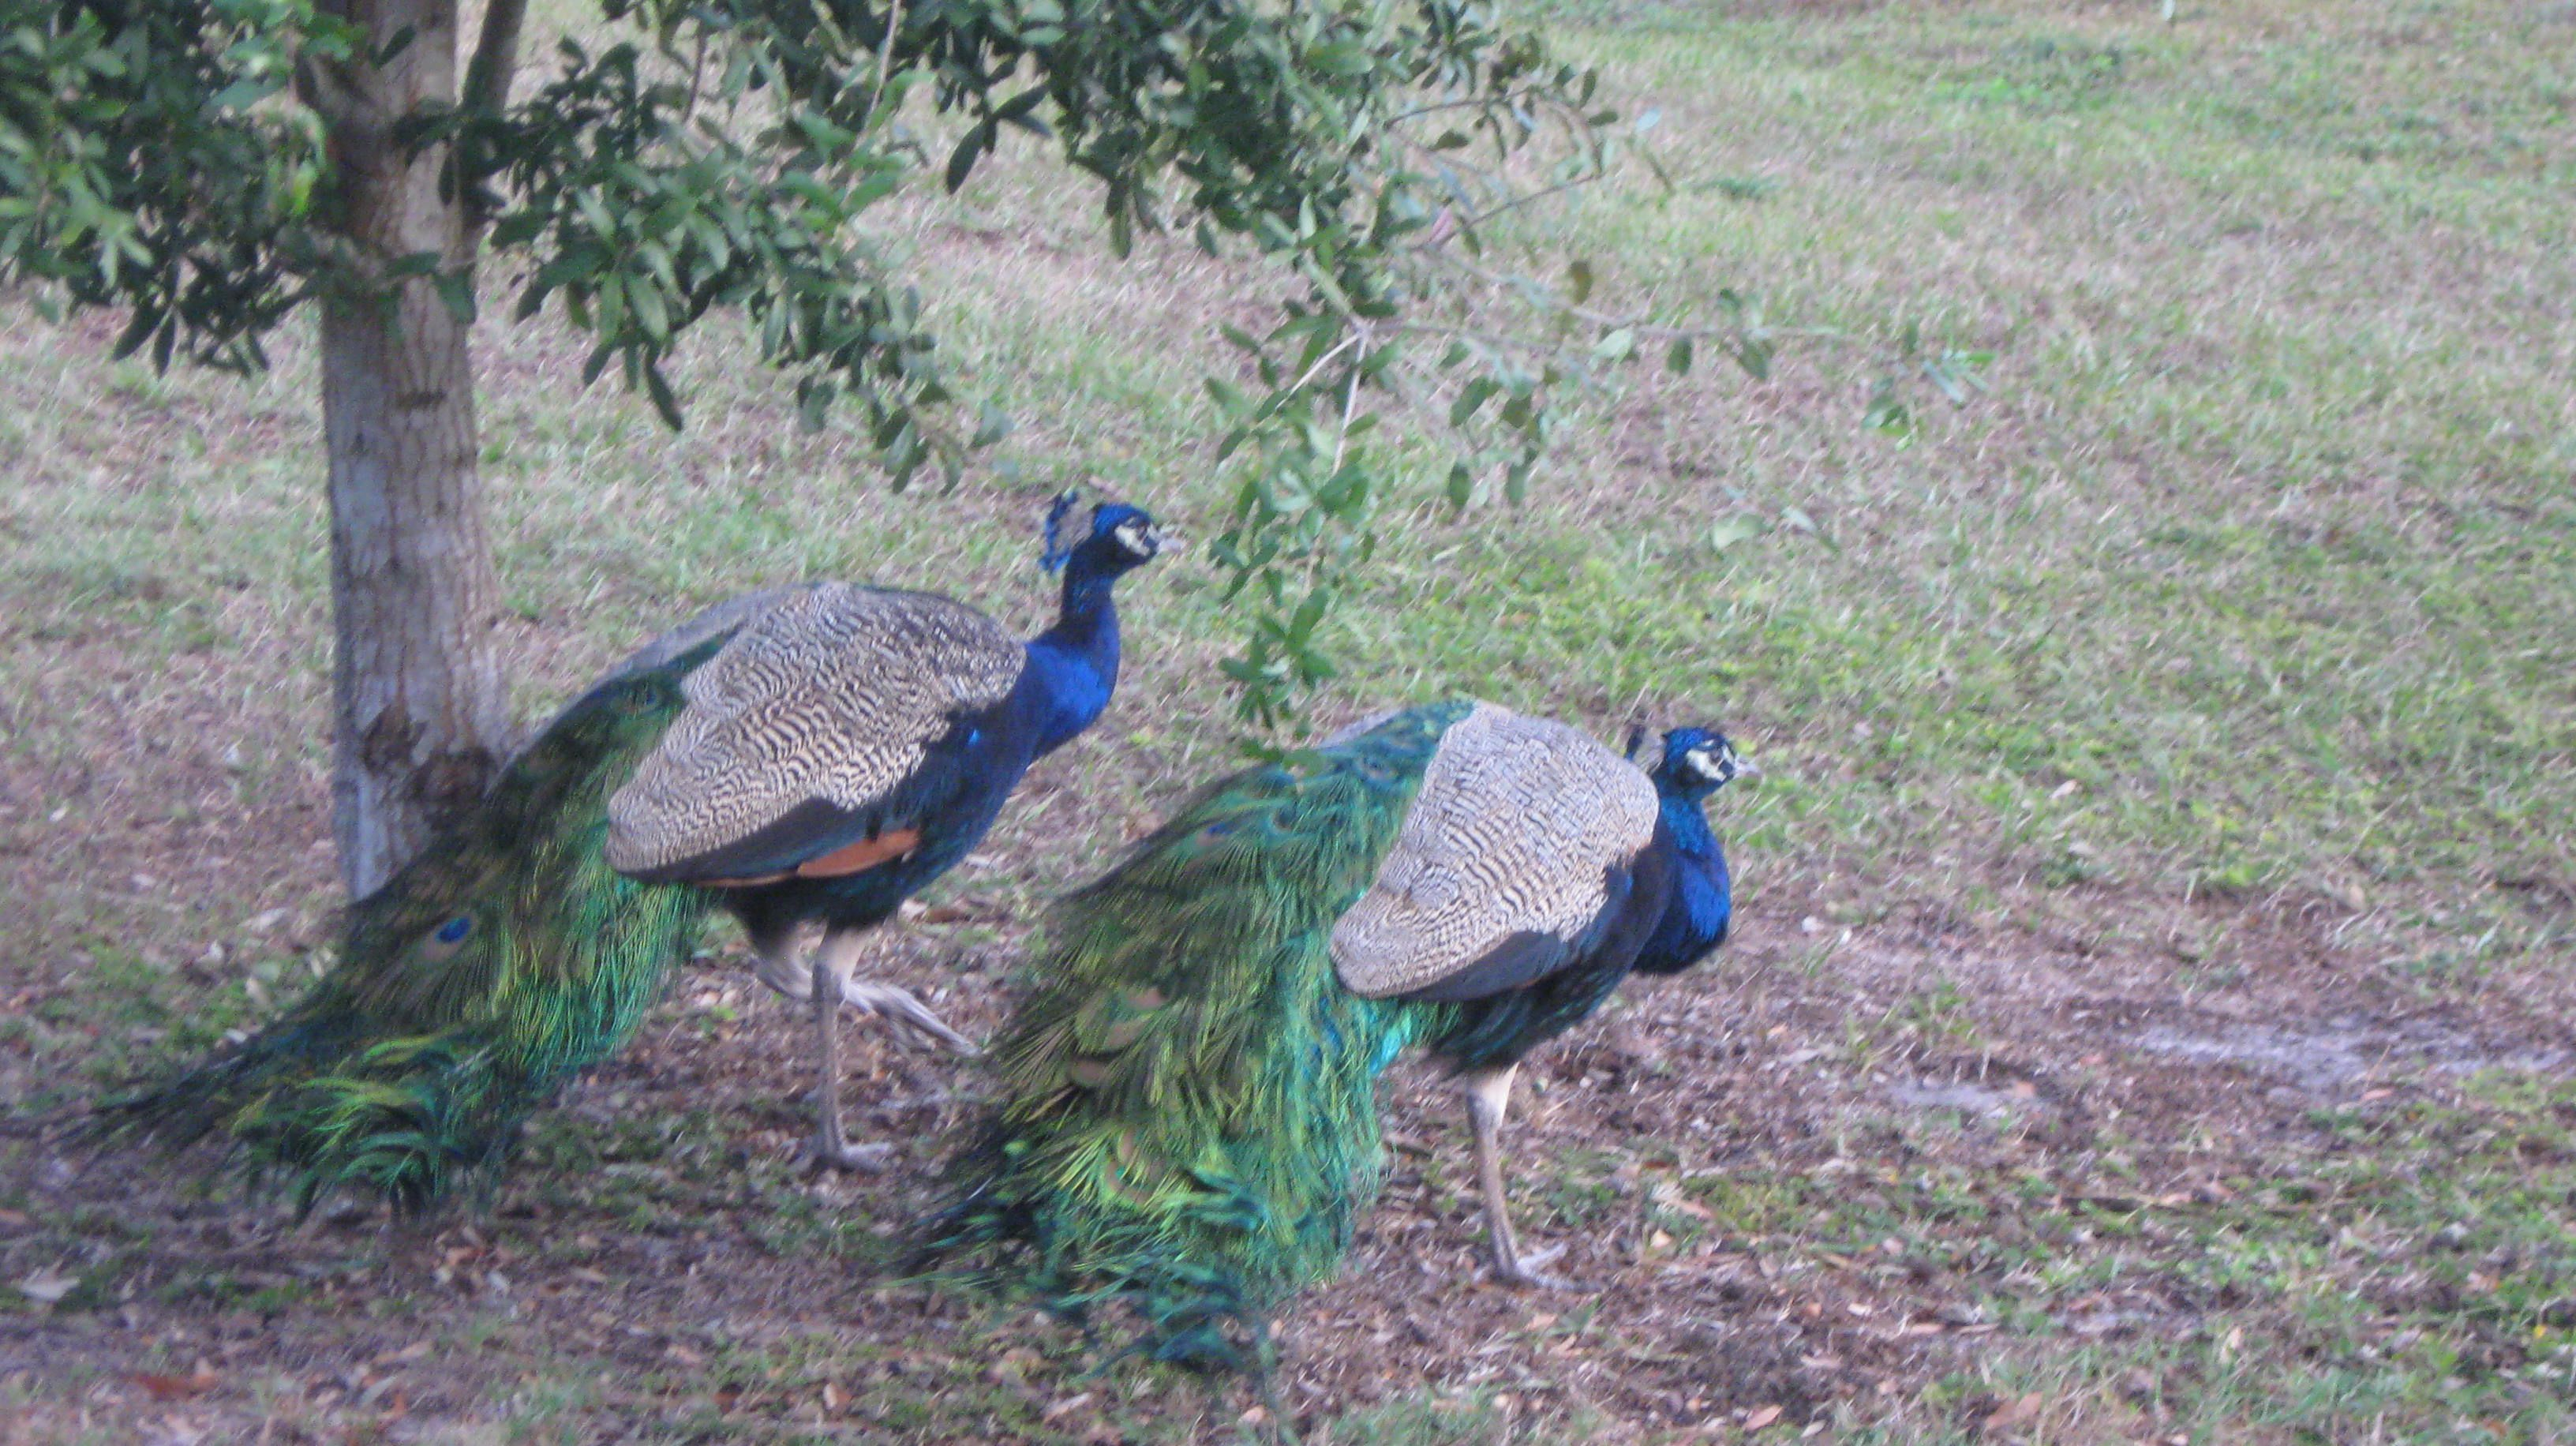 These Beautiful Peacocks are part of our neighborhood entertainment. By Iva Dawn Tepper